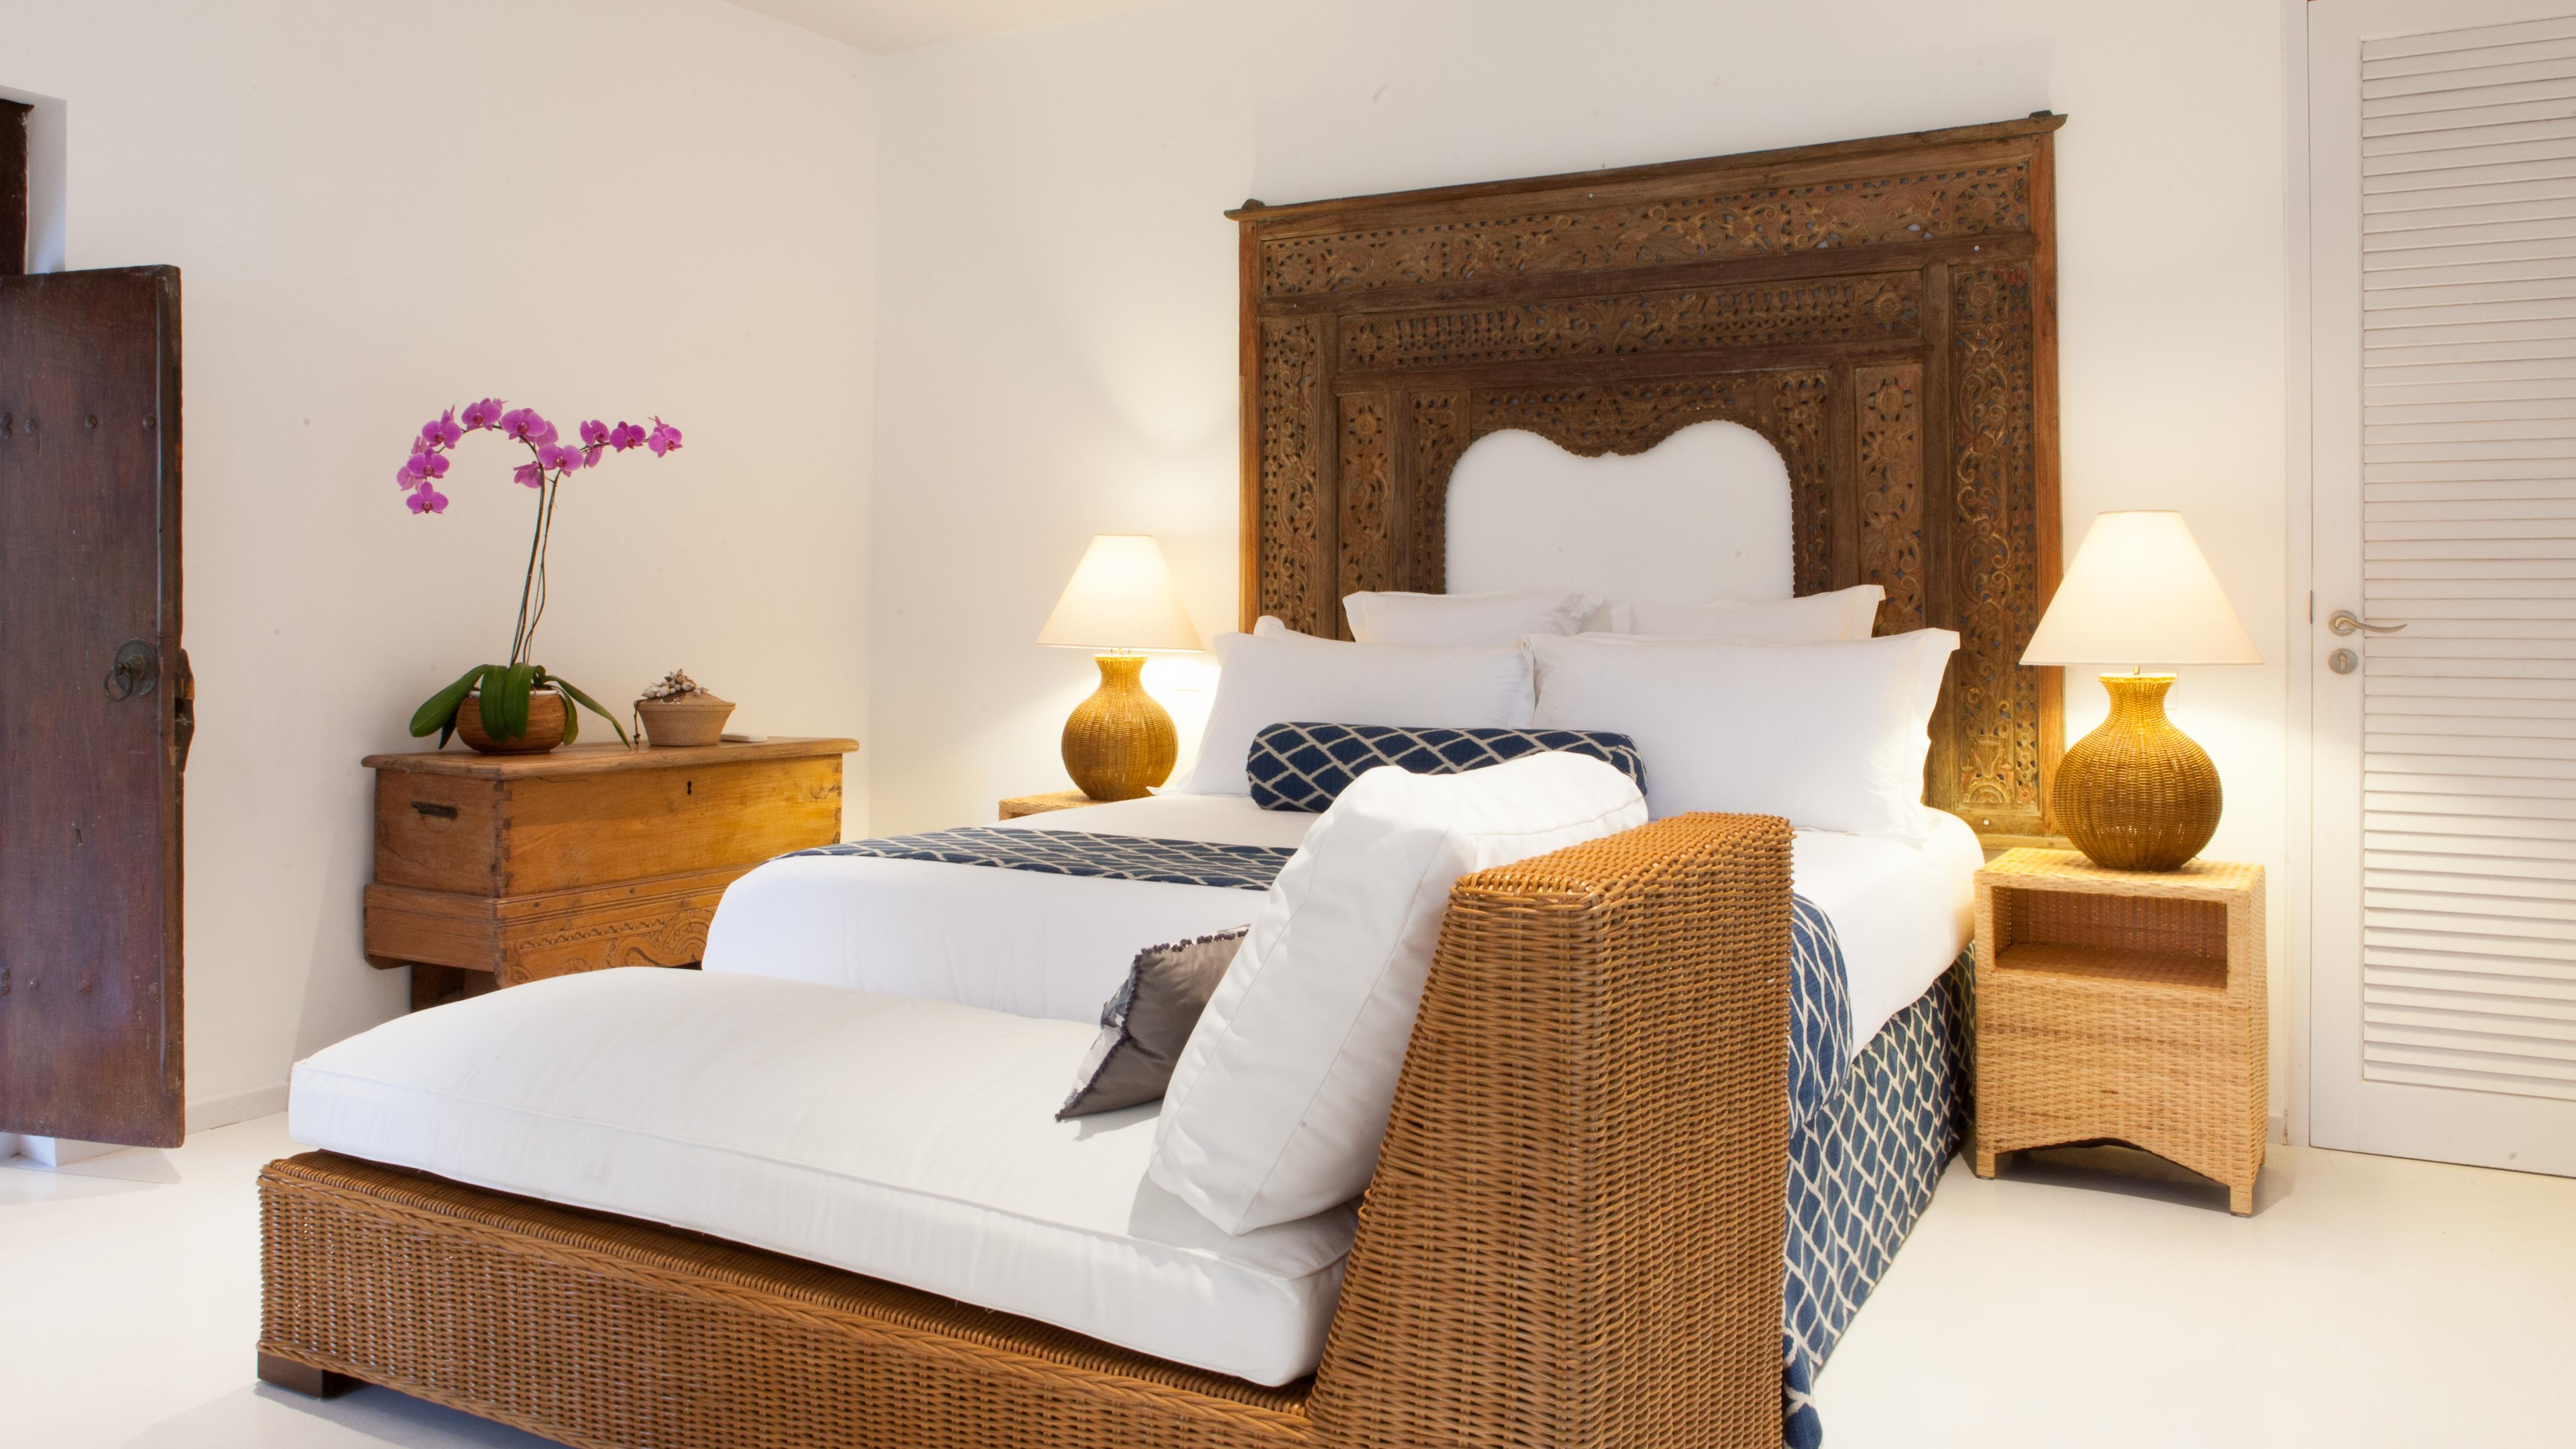 Bedroom with Table Lamps and Sofa - The Cotton House - Seminyak, Bali